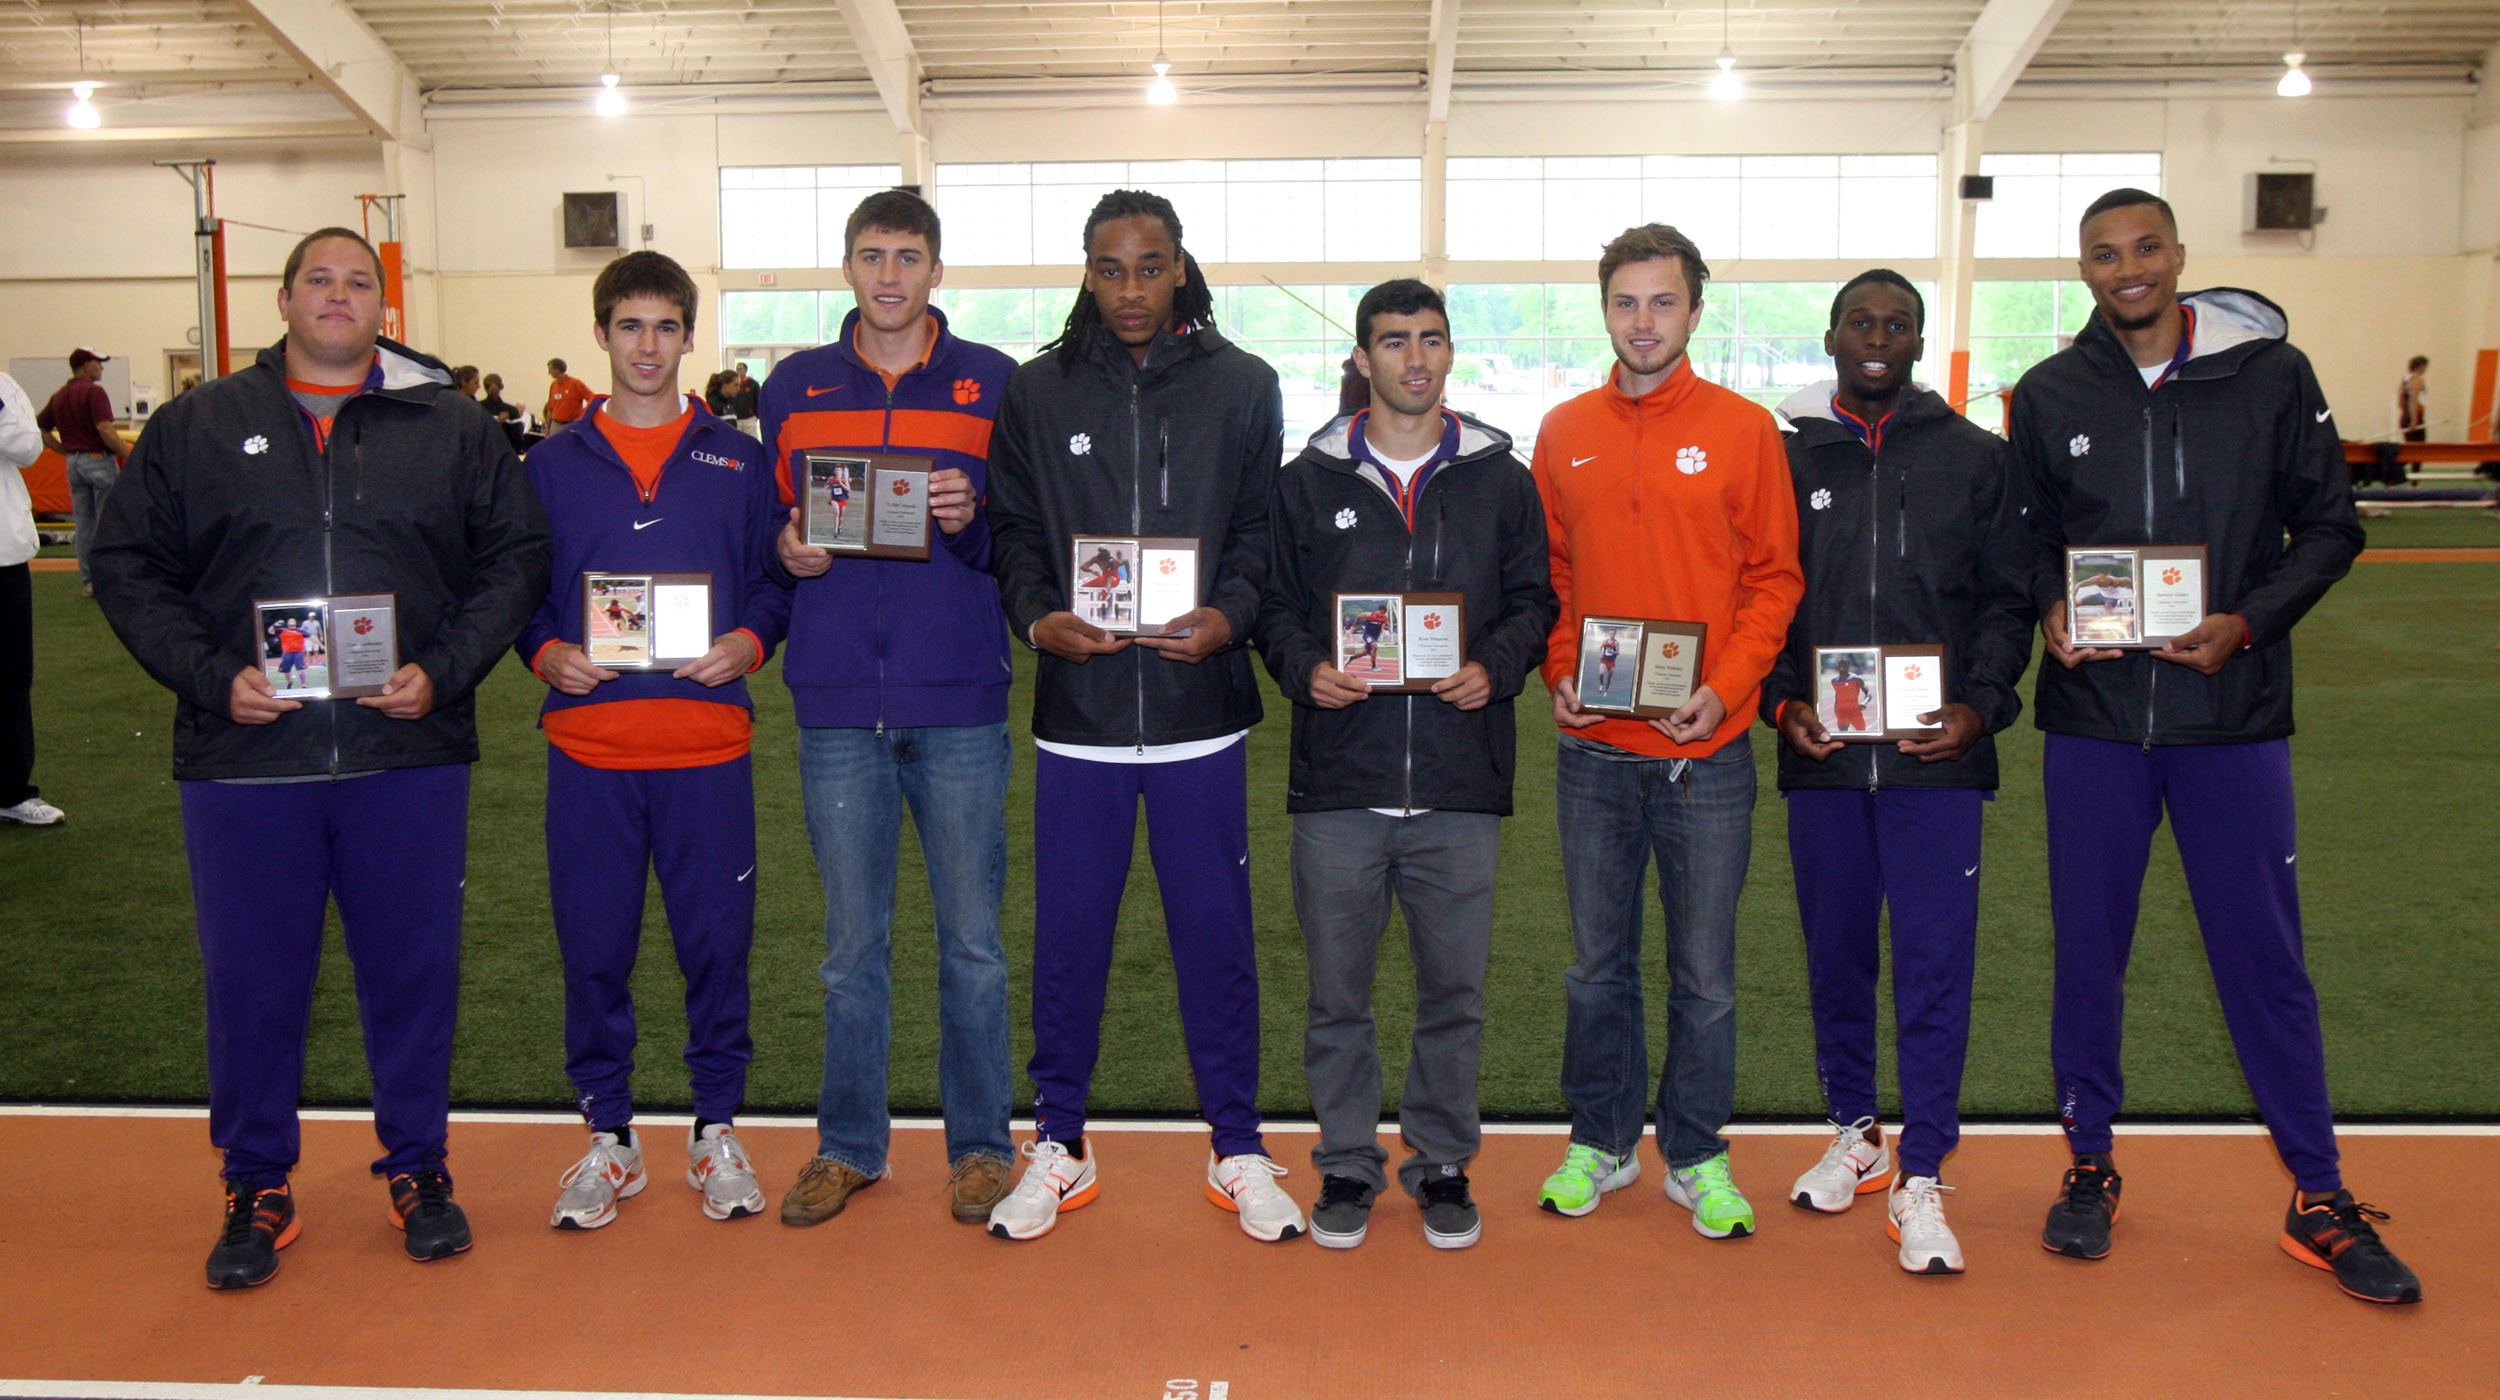 Tigers Honor Senior Class Despite Inclement Weather at Bob Pollock Invitational